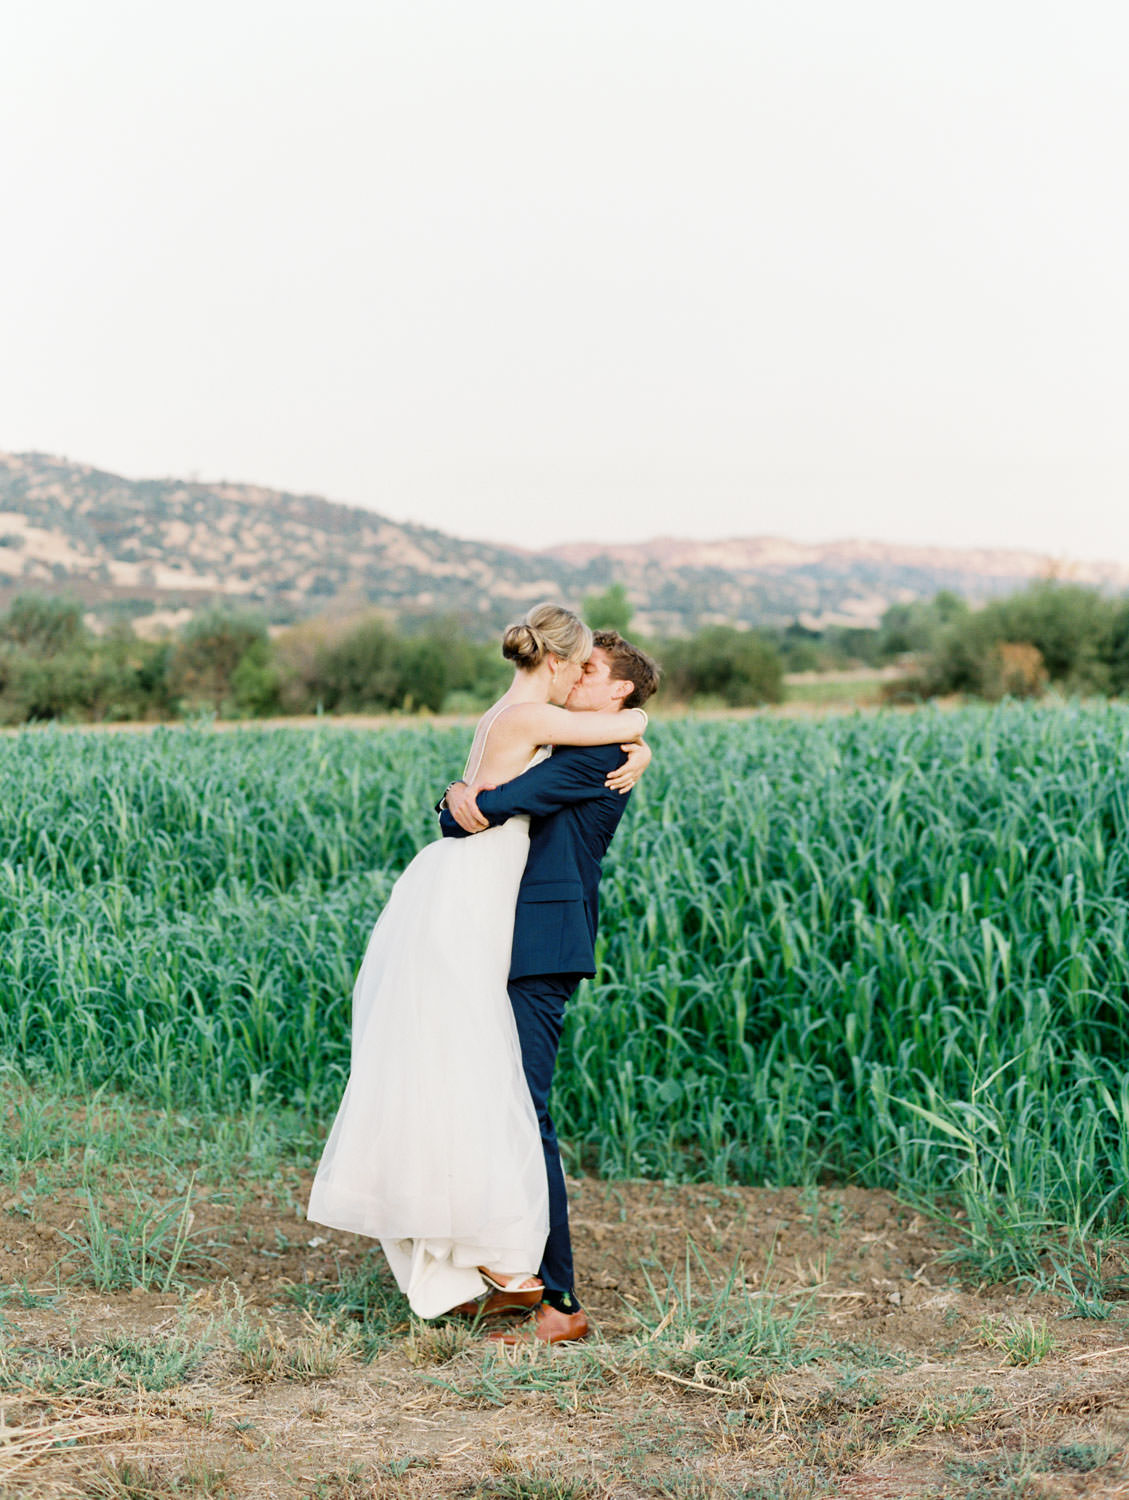 Groom picking up bride to kiss her with fields and mountains in the background. Full Belly Farm reception by film photographer Cavin Elizabeth Photography